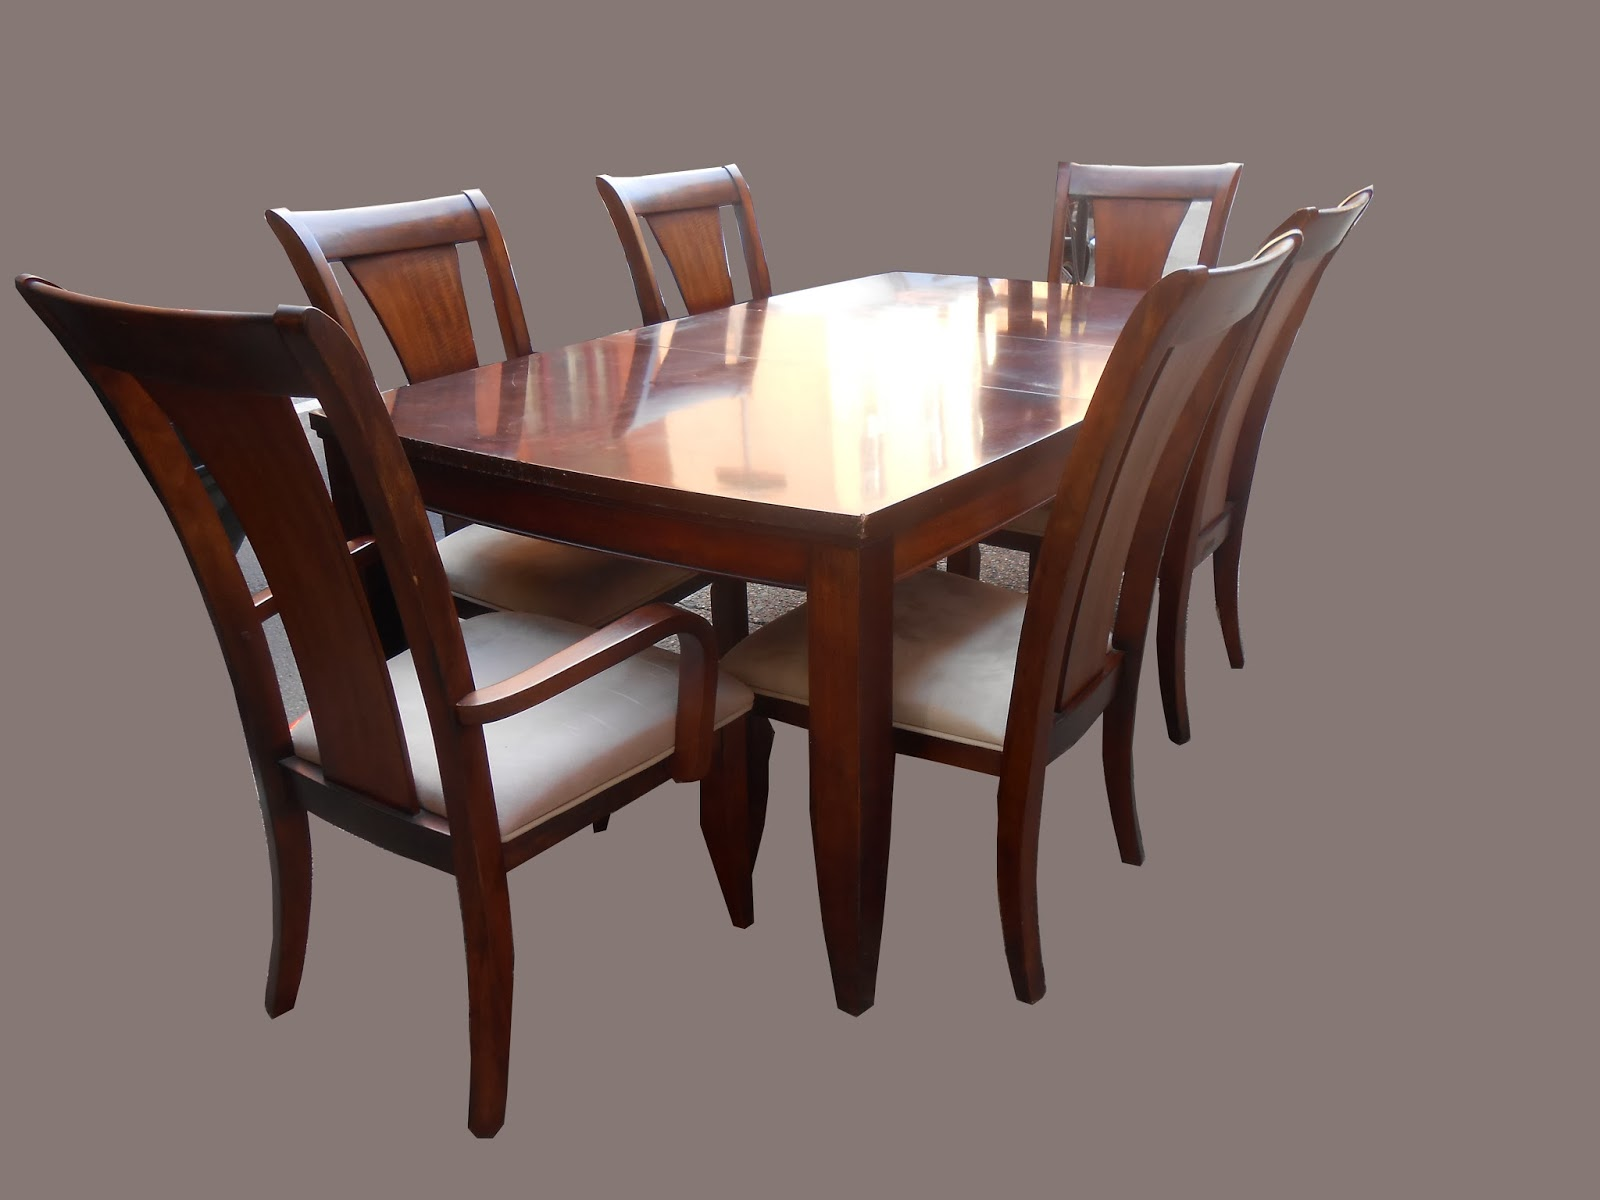 Uhuru furniture collectibles mahogany dining table w 6 for Dining table and 6 chairs